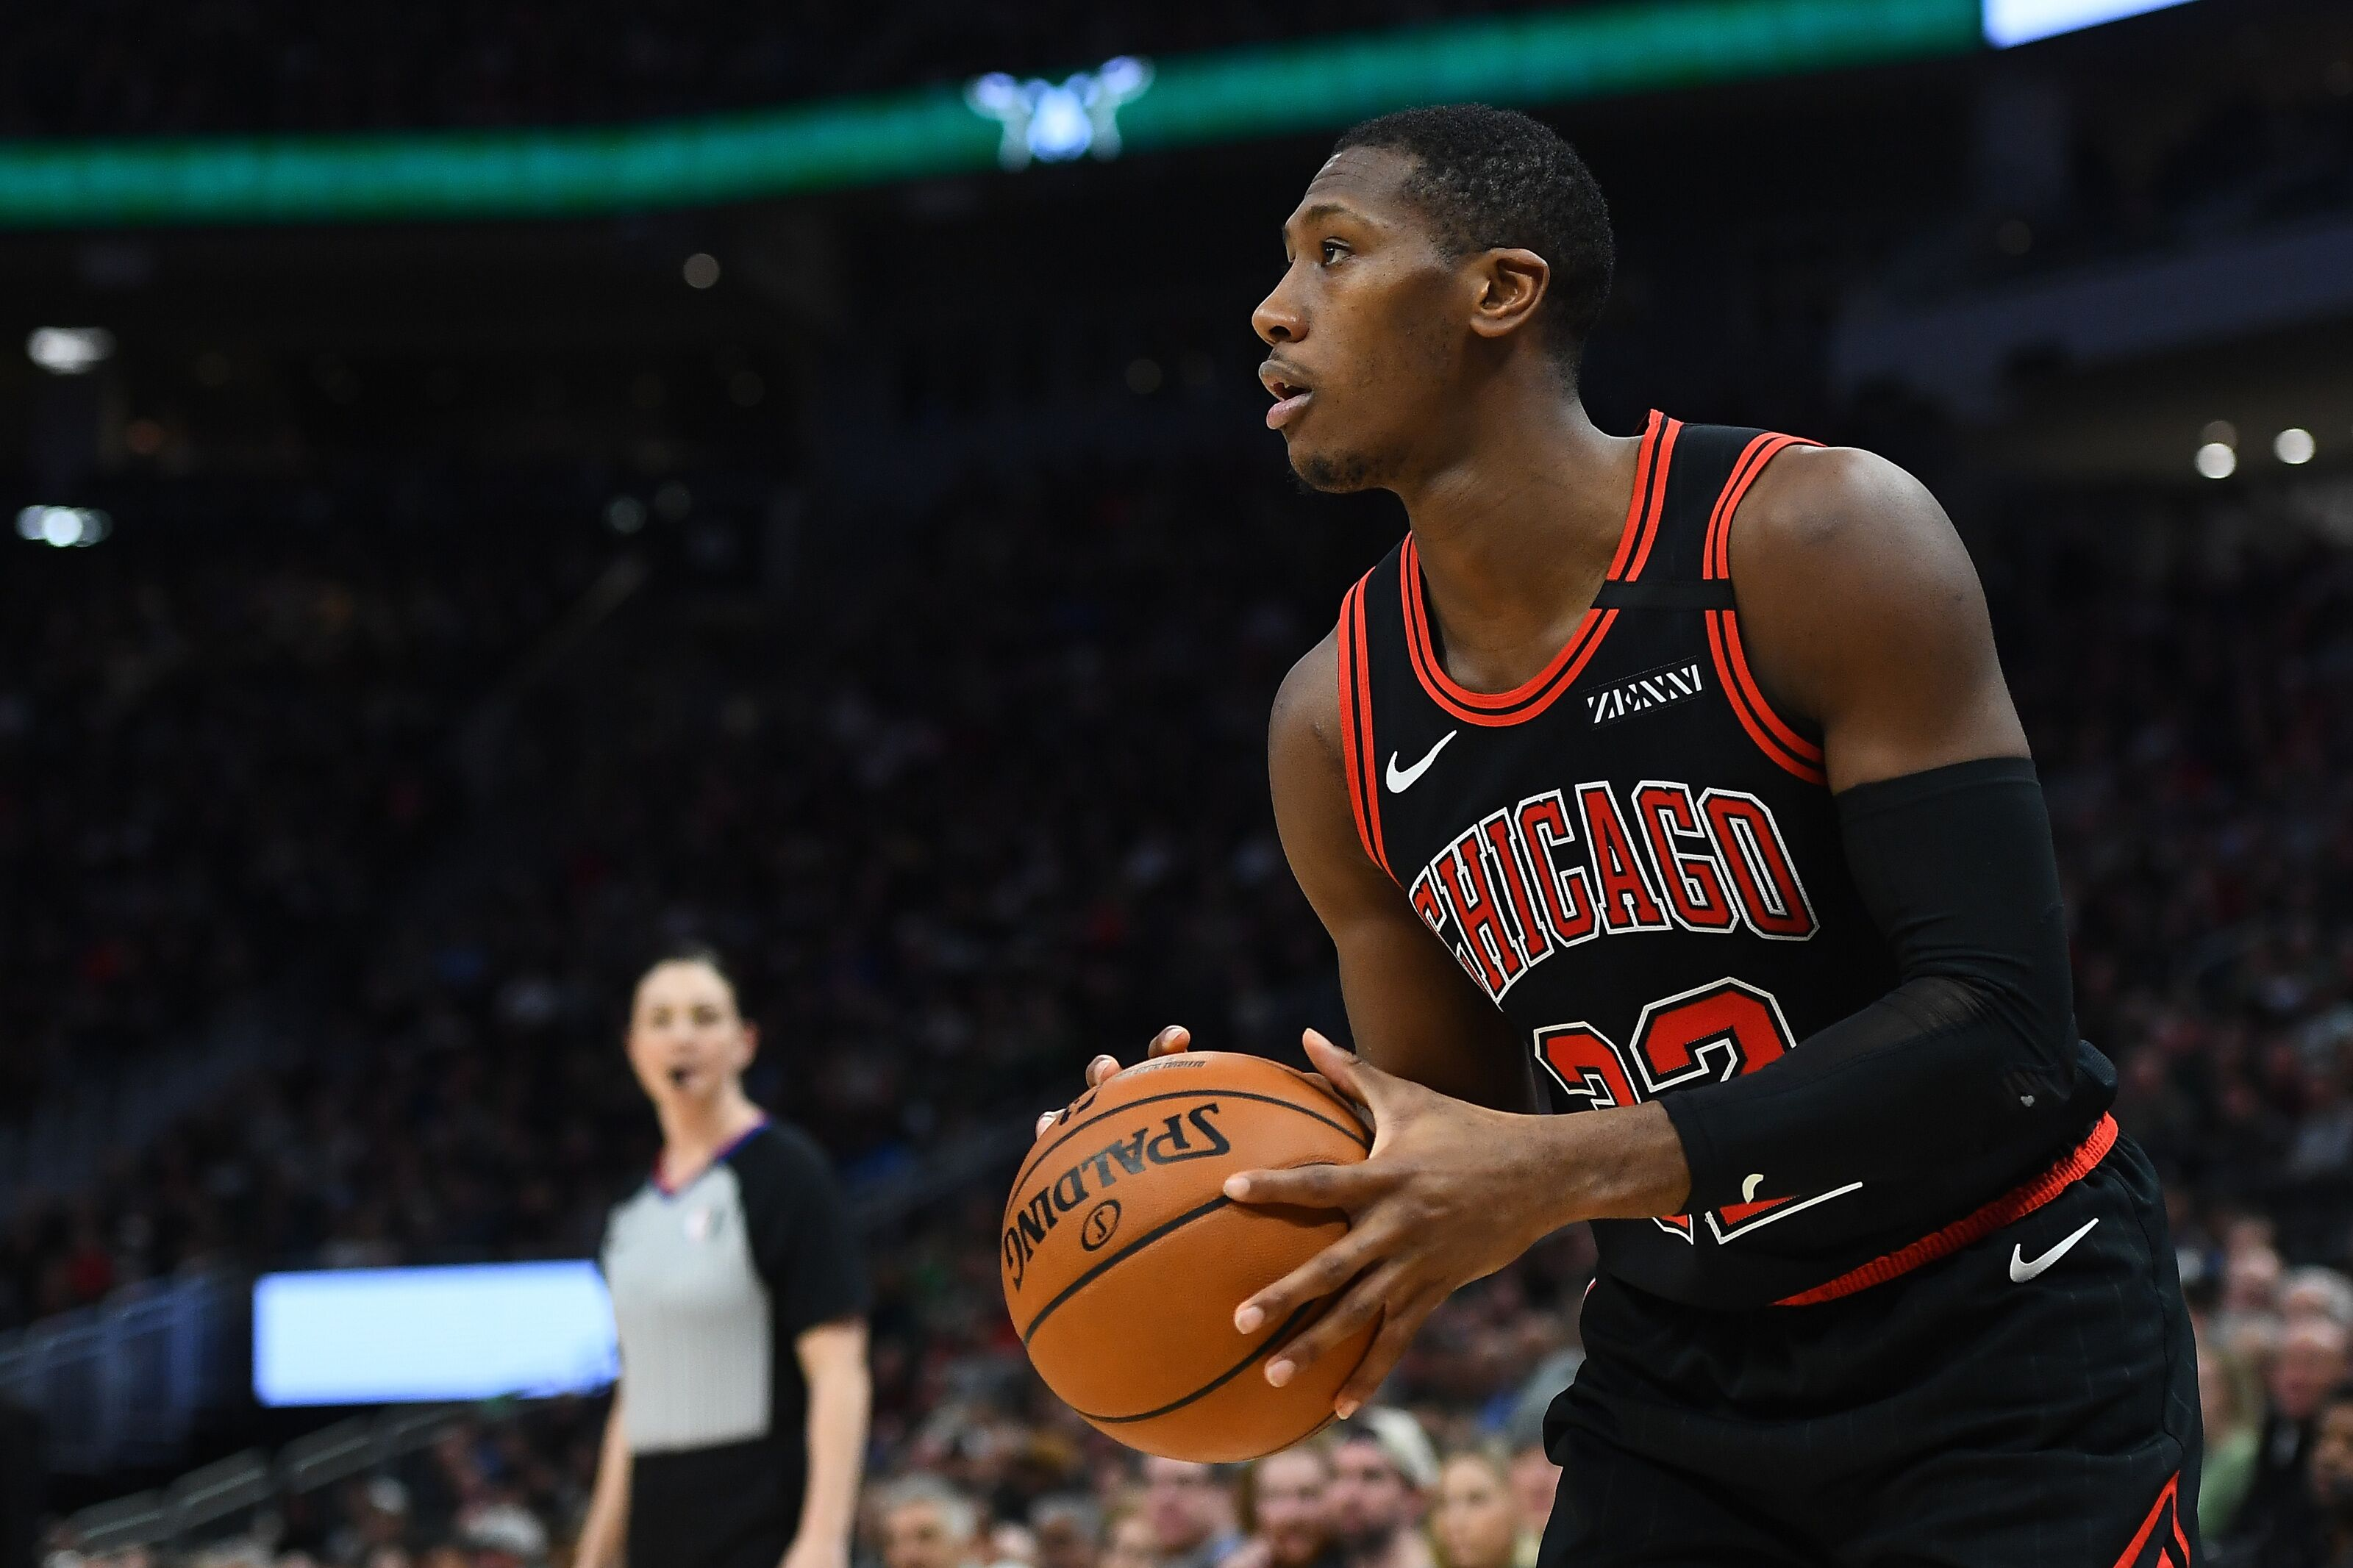 Chicago Bulls: Kris Dunn is taking way too many three-point attempts